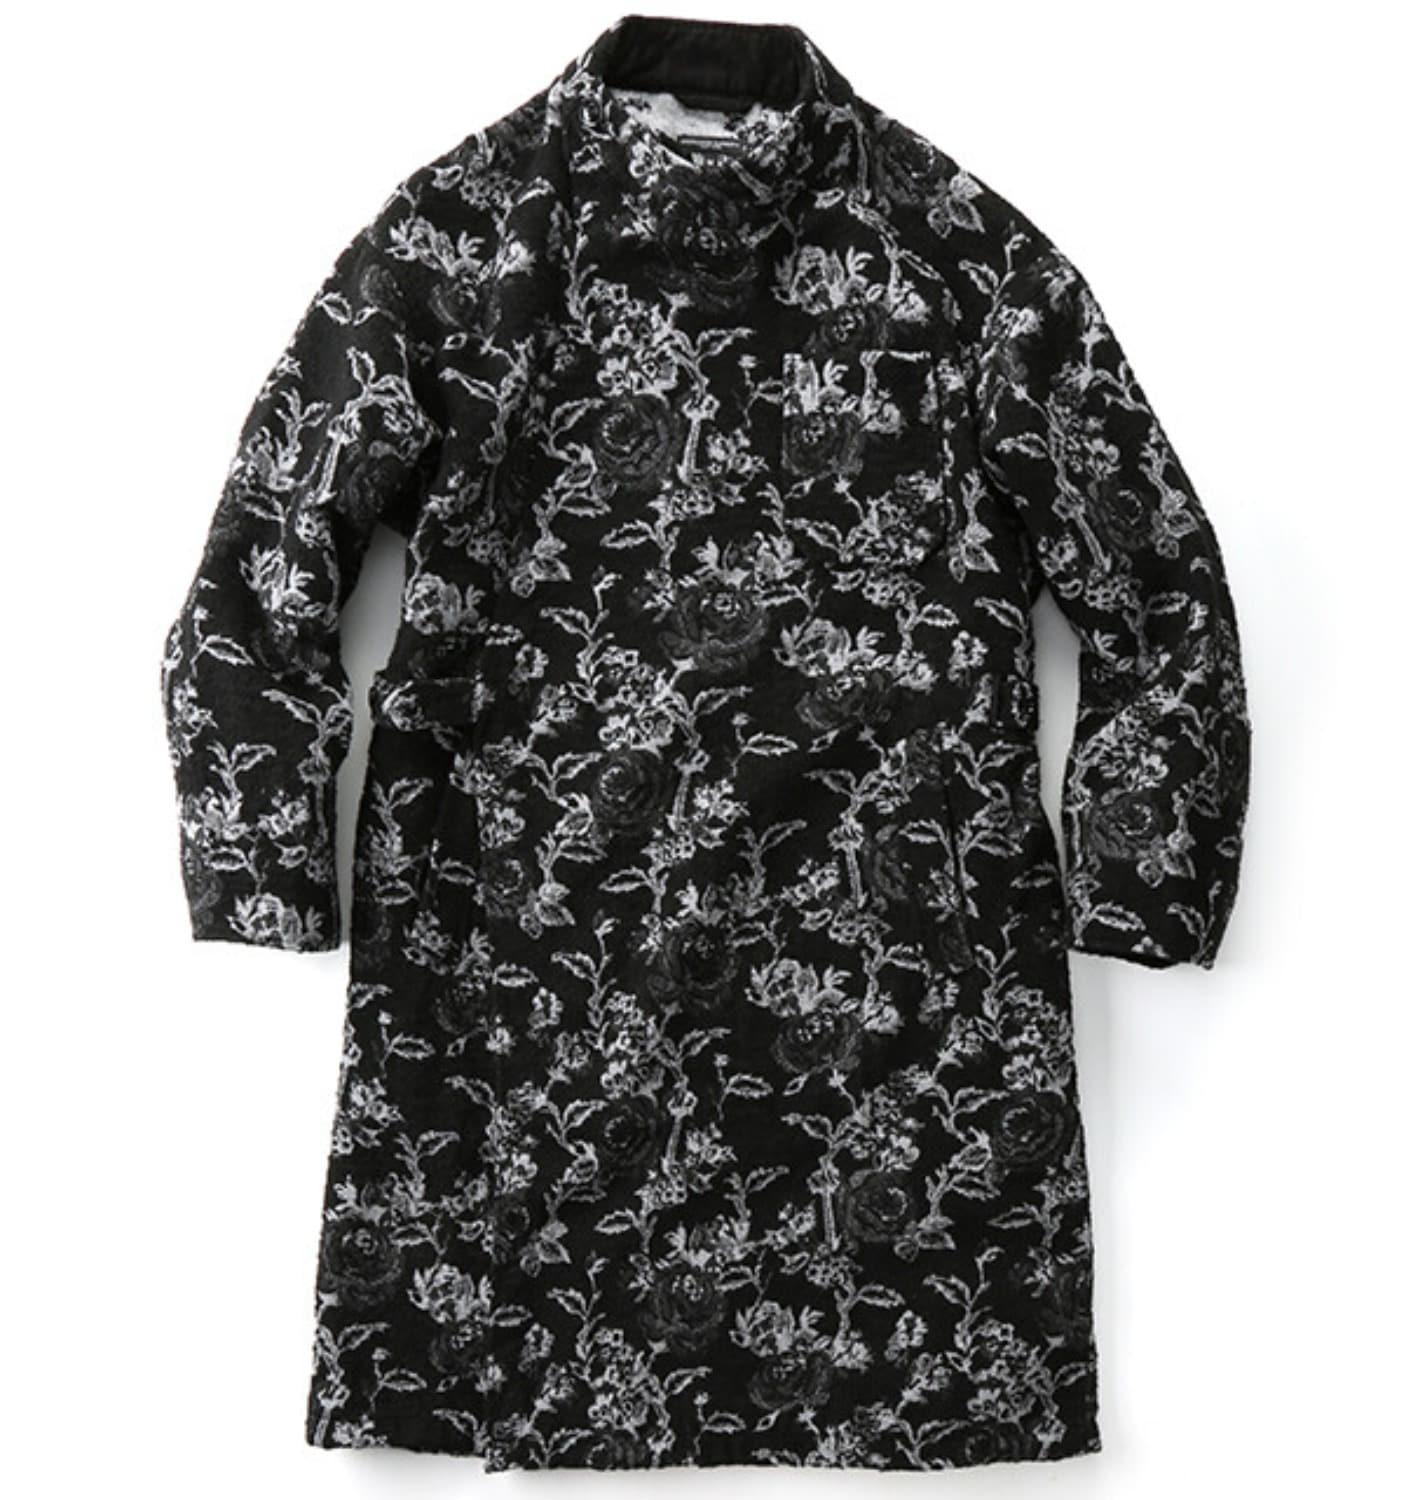 MG COAT BLACK WHITE POLY WOOL ROSE JACQUARD